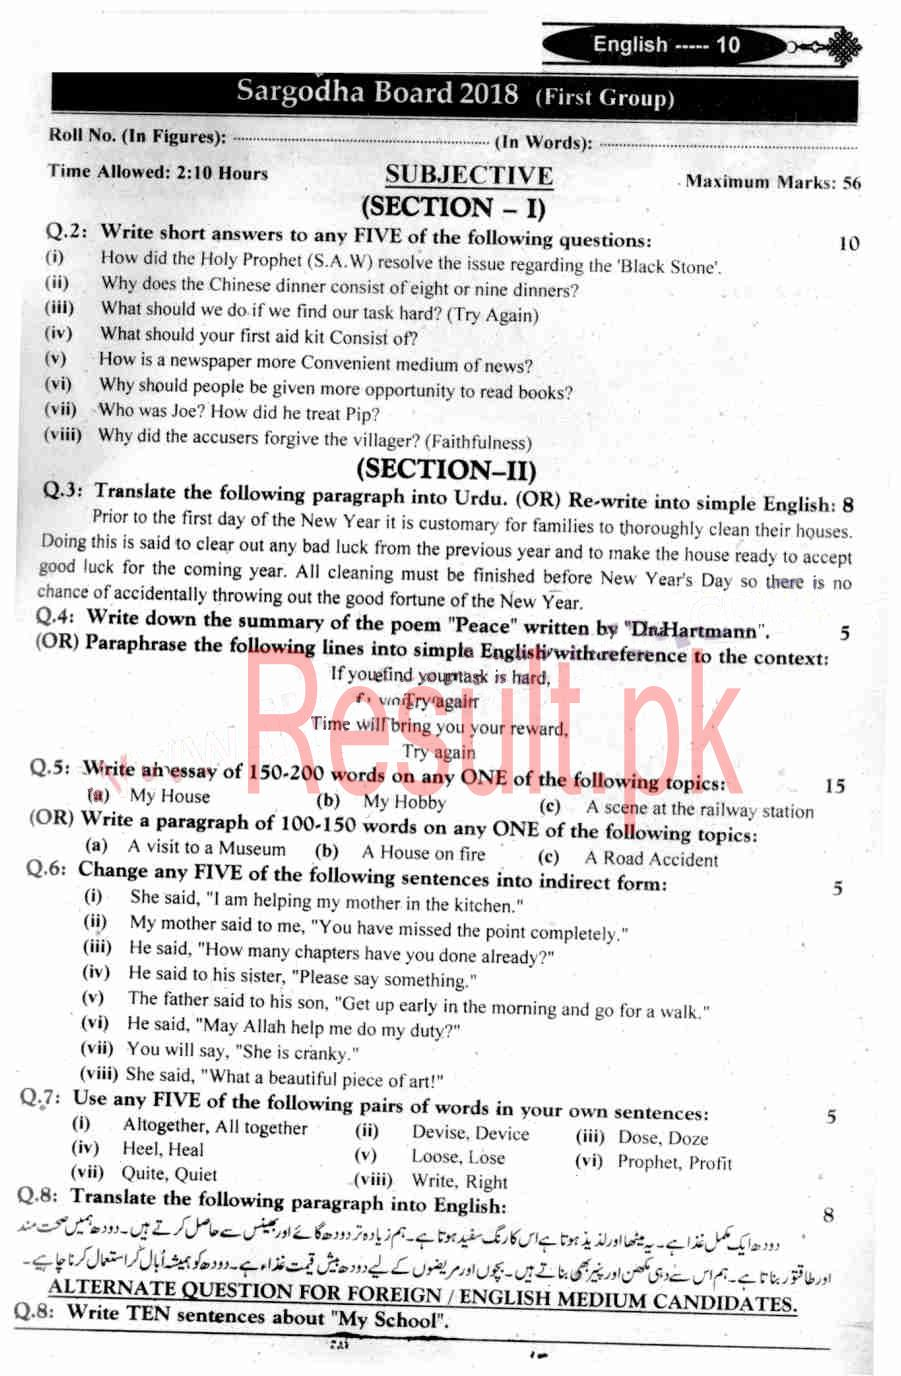 BISE Sargodha Board Past Papers 2019 Matric, SSC Part 1 & 2